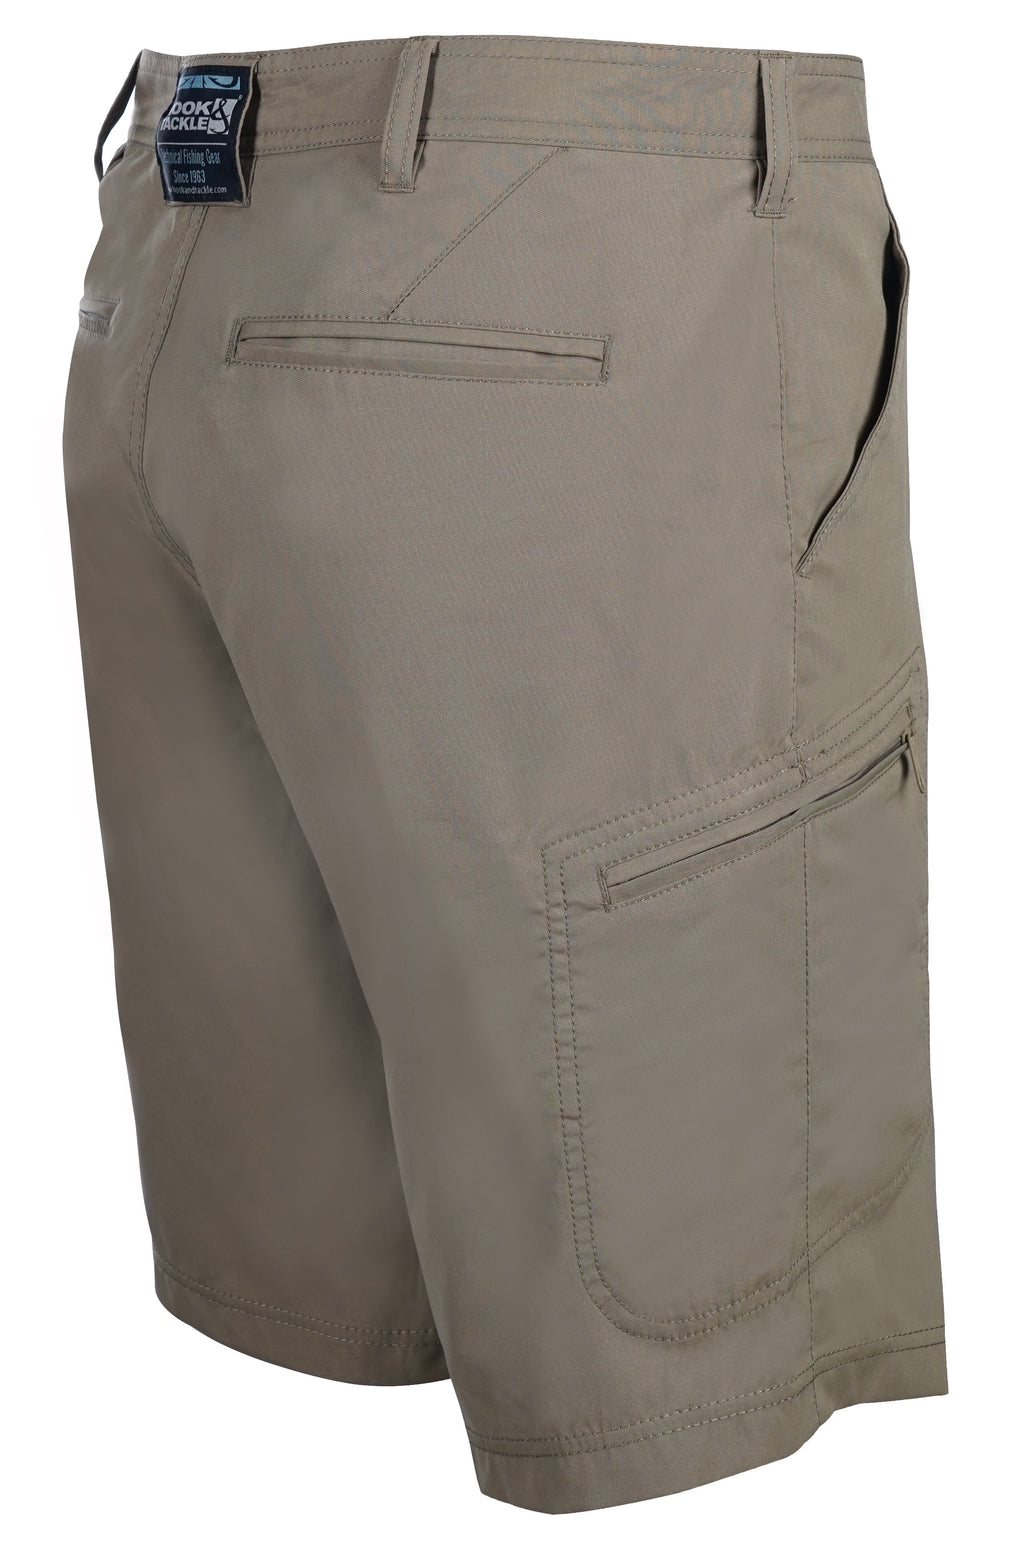 Driftwood Hybrid Fishing Short, Khaki